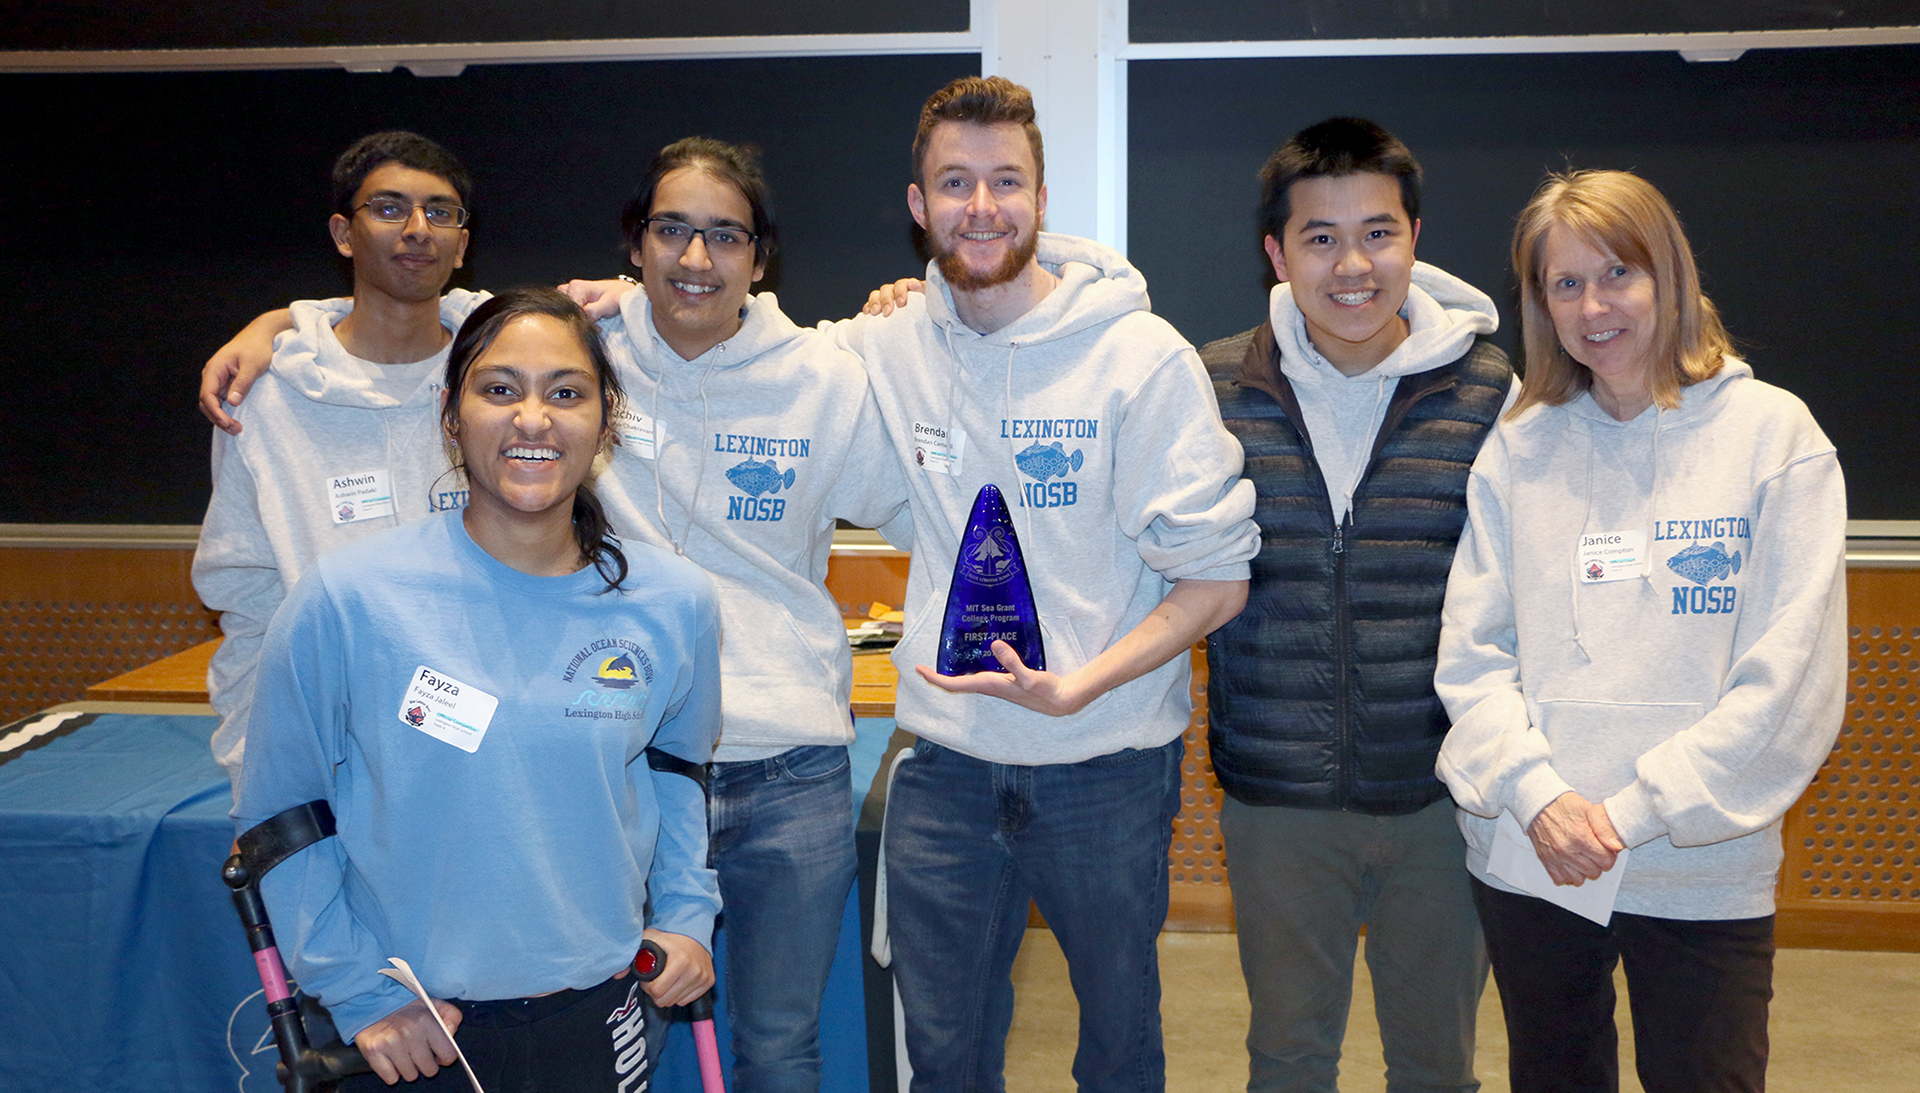 Five students and a teacher posing with a blue glass award for a photo as the first place Blue Lobster Bowl team